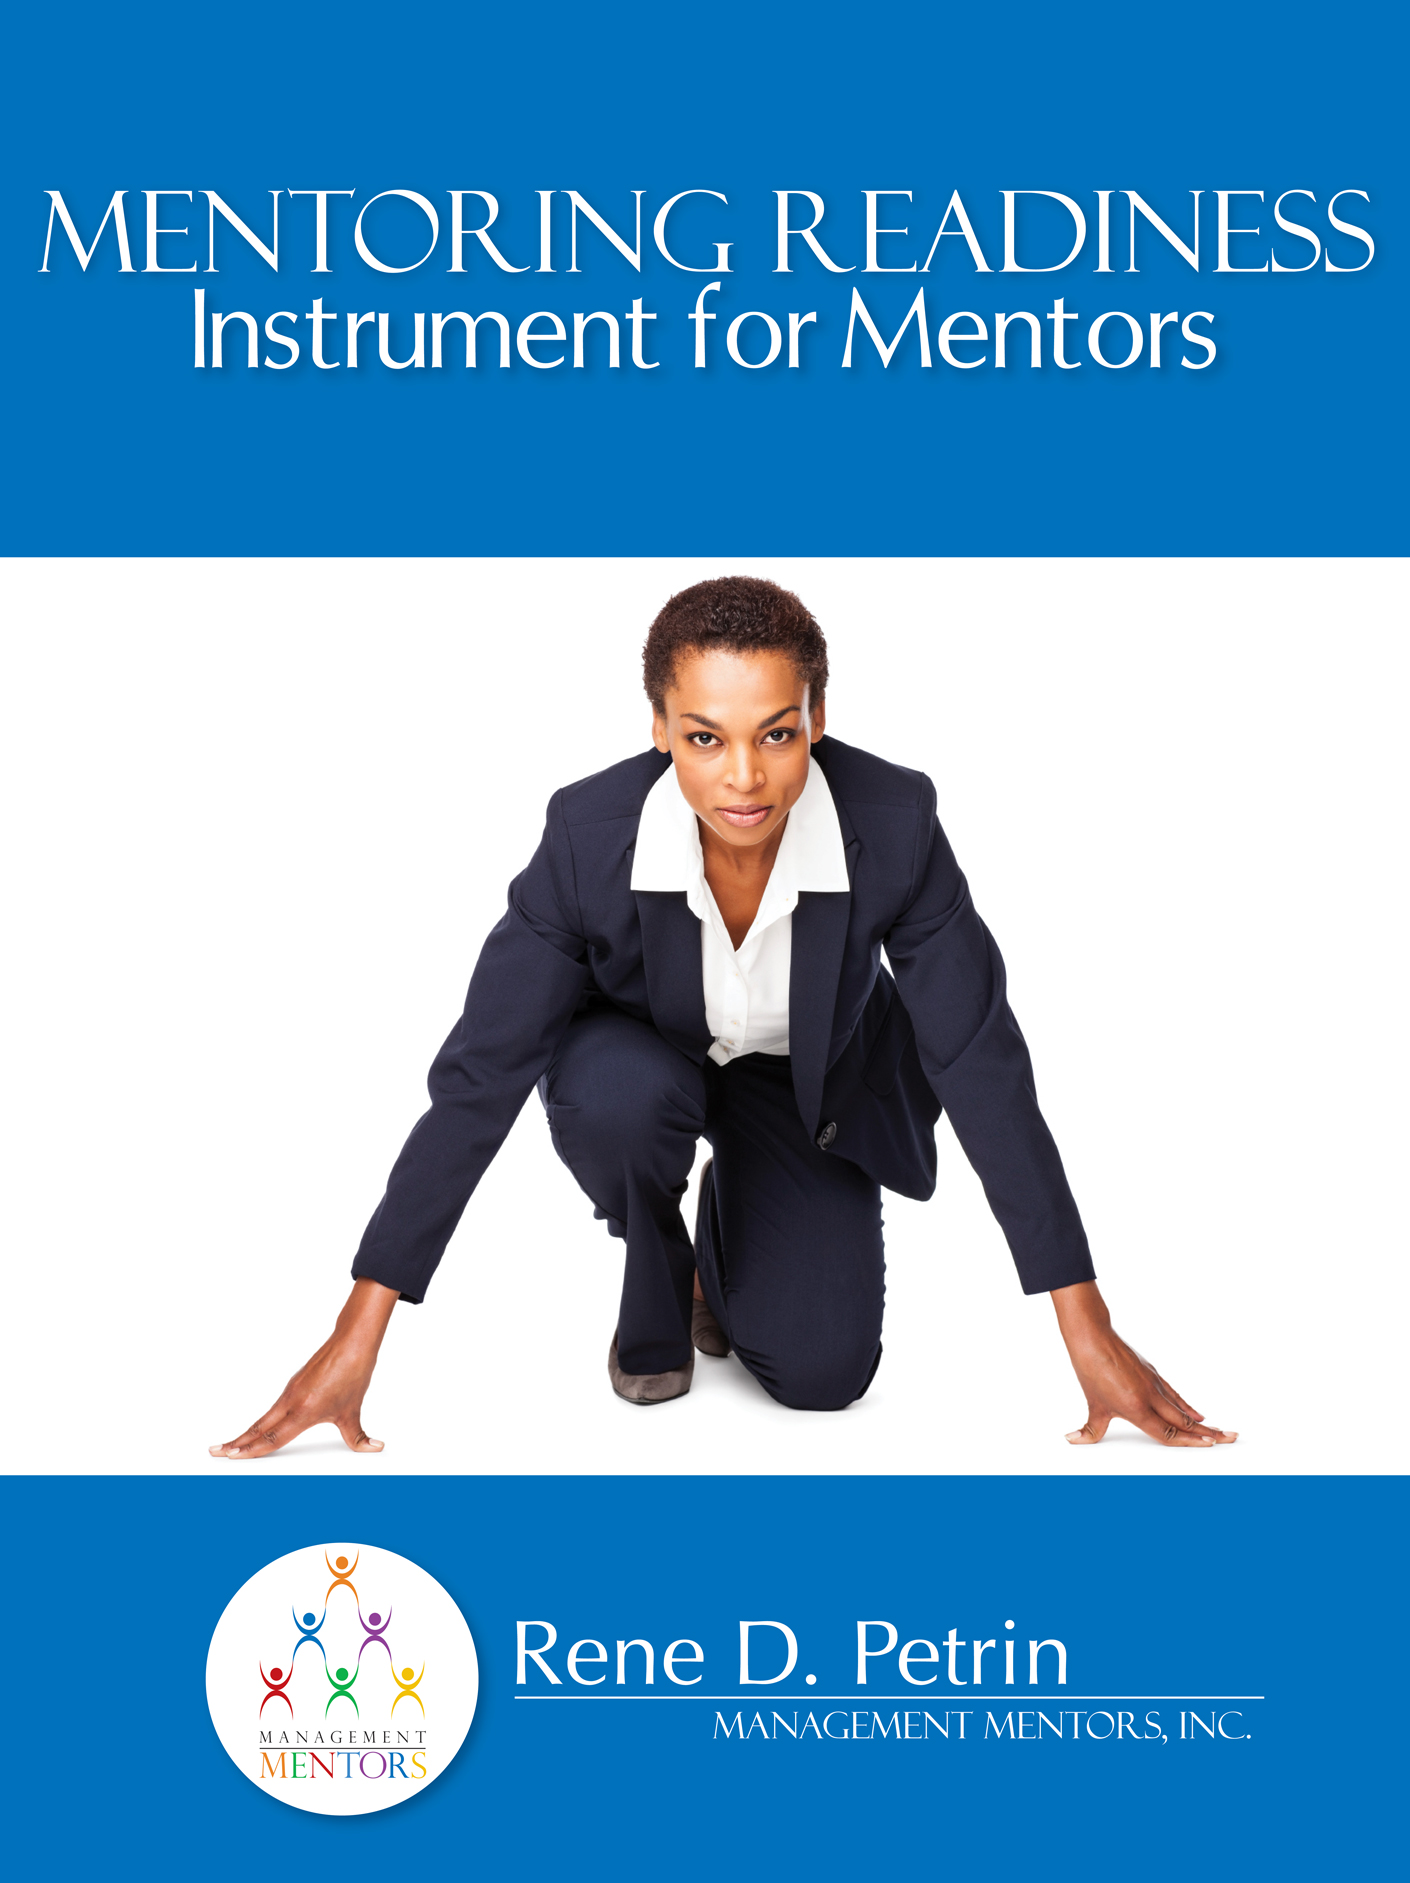 Mentor Readiness Instrument